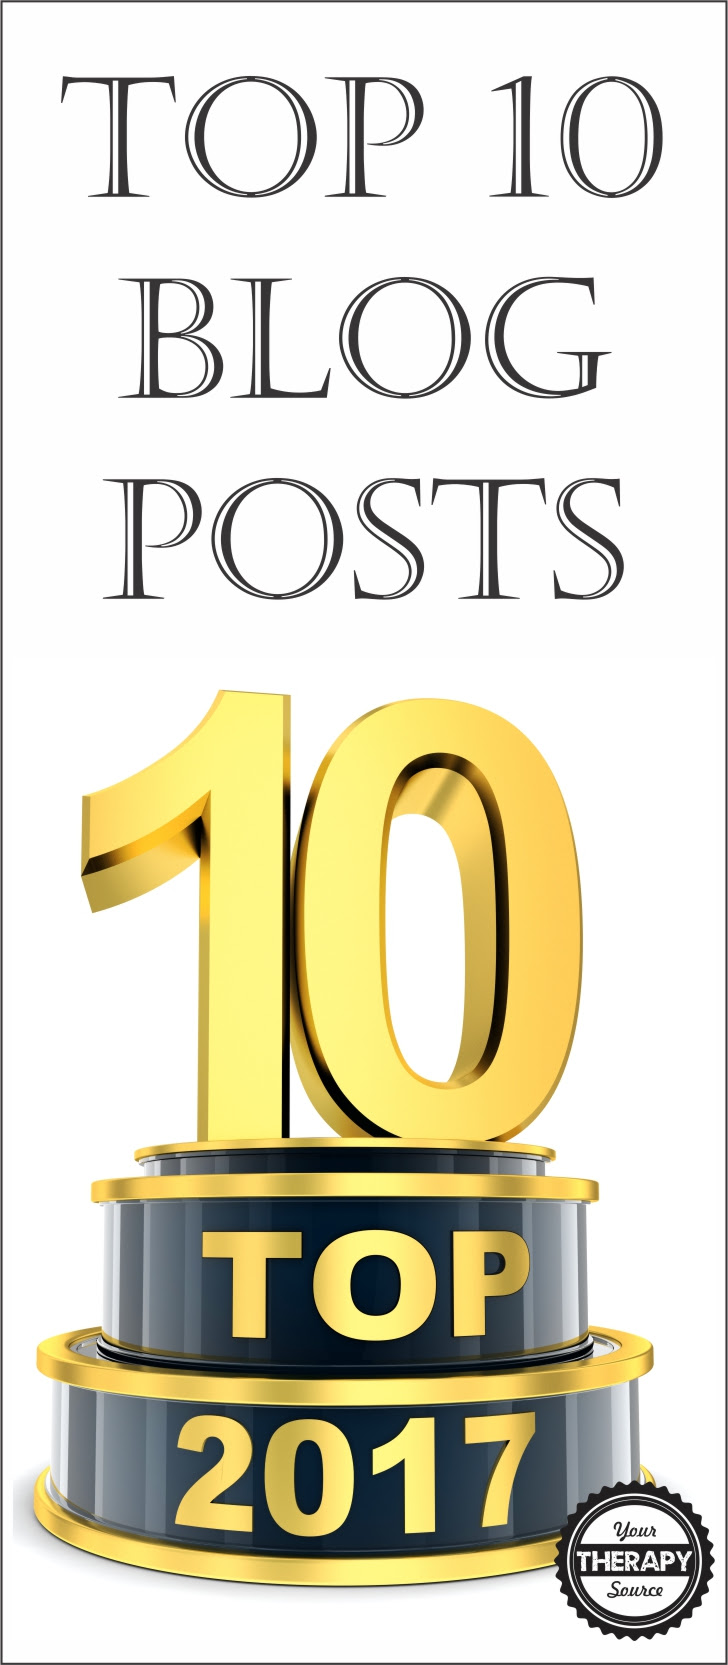 Top 10 Blog Posts from 2017 at Your Therapy Source